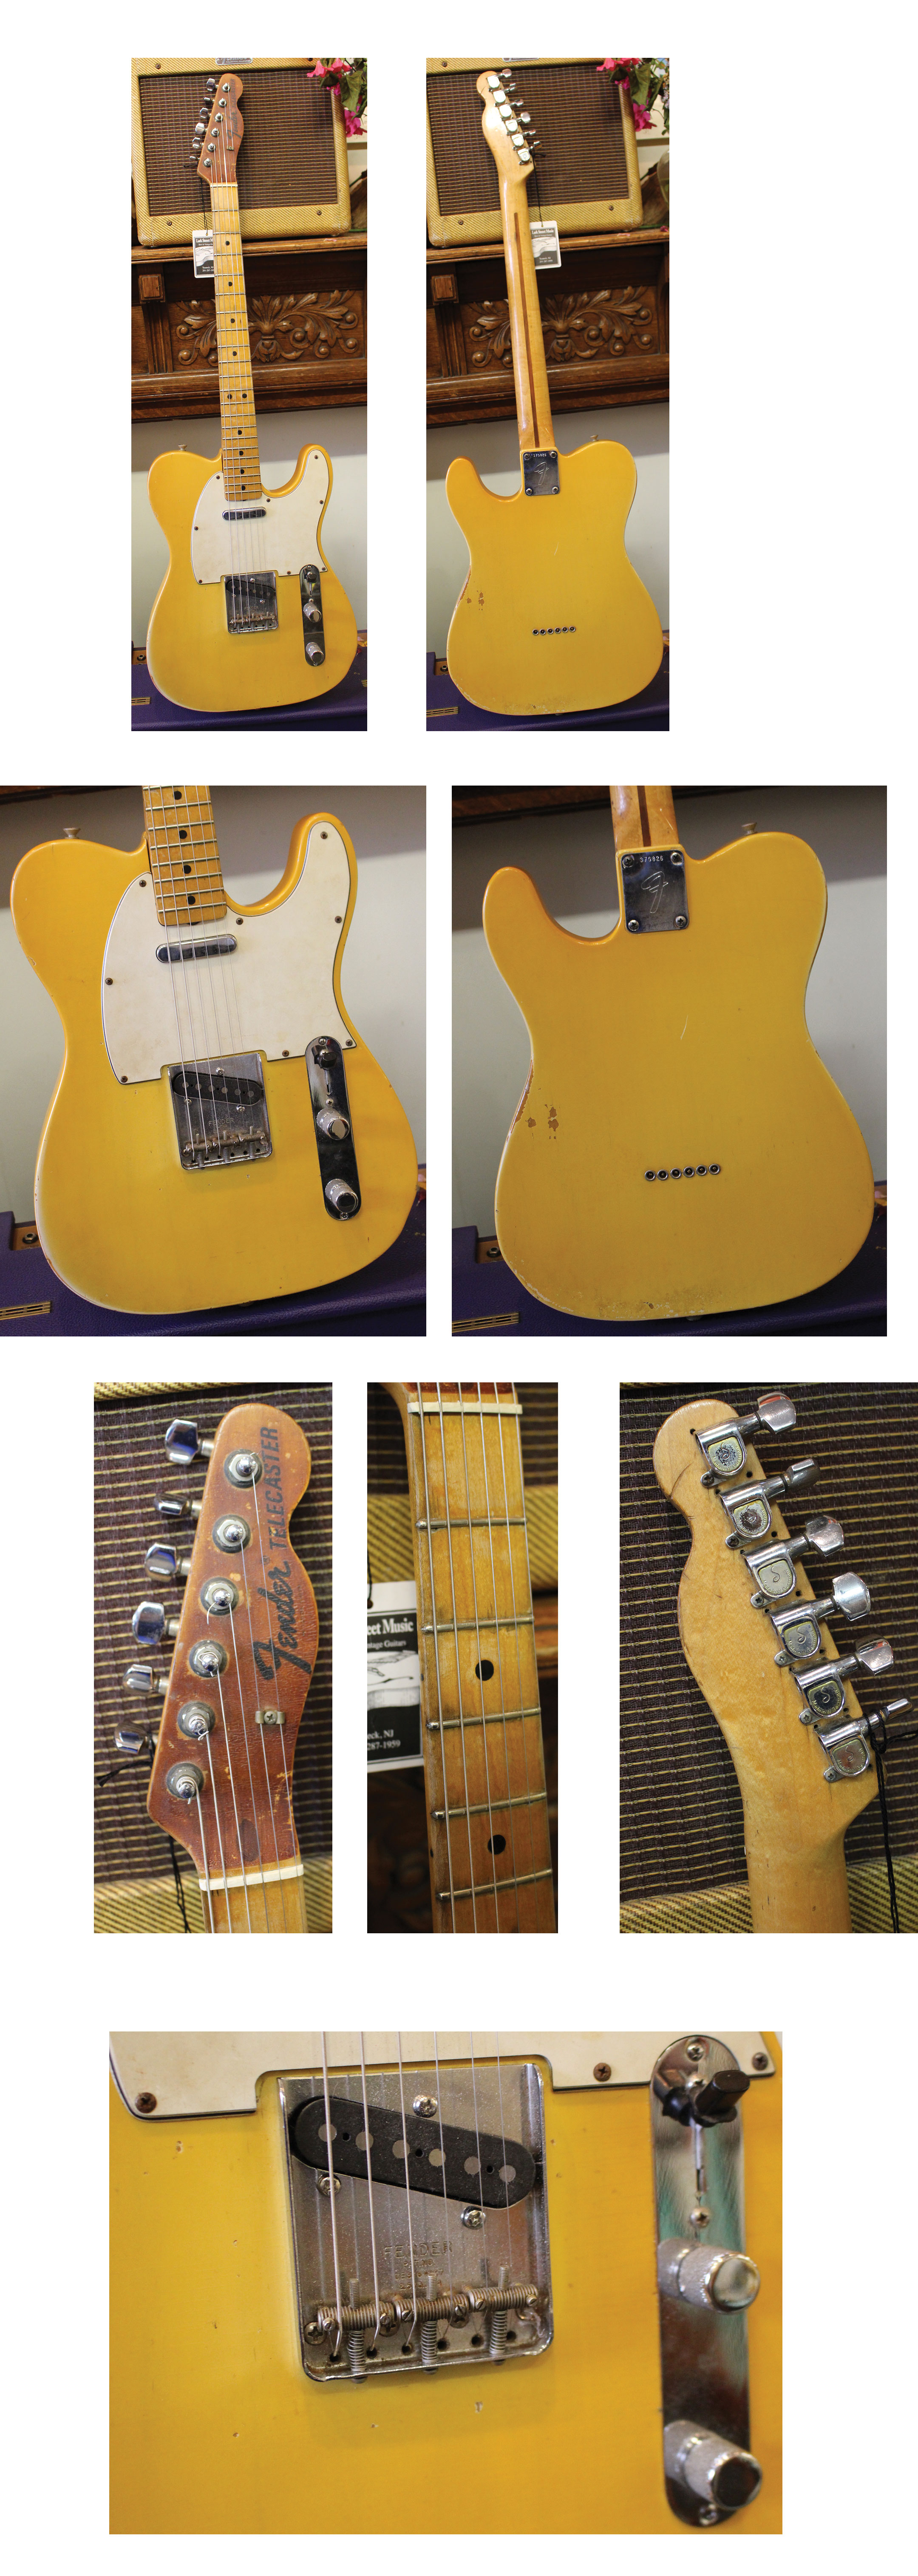 18ffa192 $400 TELECASTERS *FENDER Telecaster, 1971, Blonde, original neck pickup,  Duncan 1/4 pounder at bridge, Maple neck with Schaller tuners, refretted  with jumbo ...